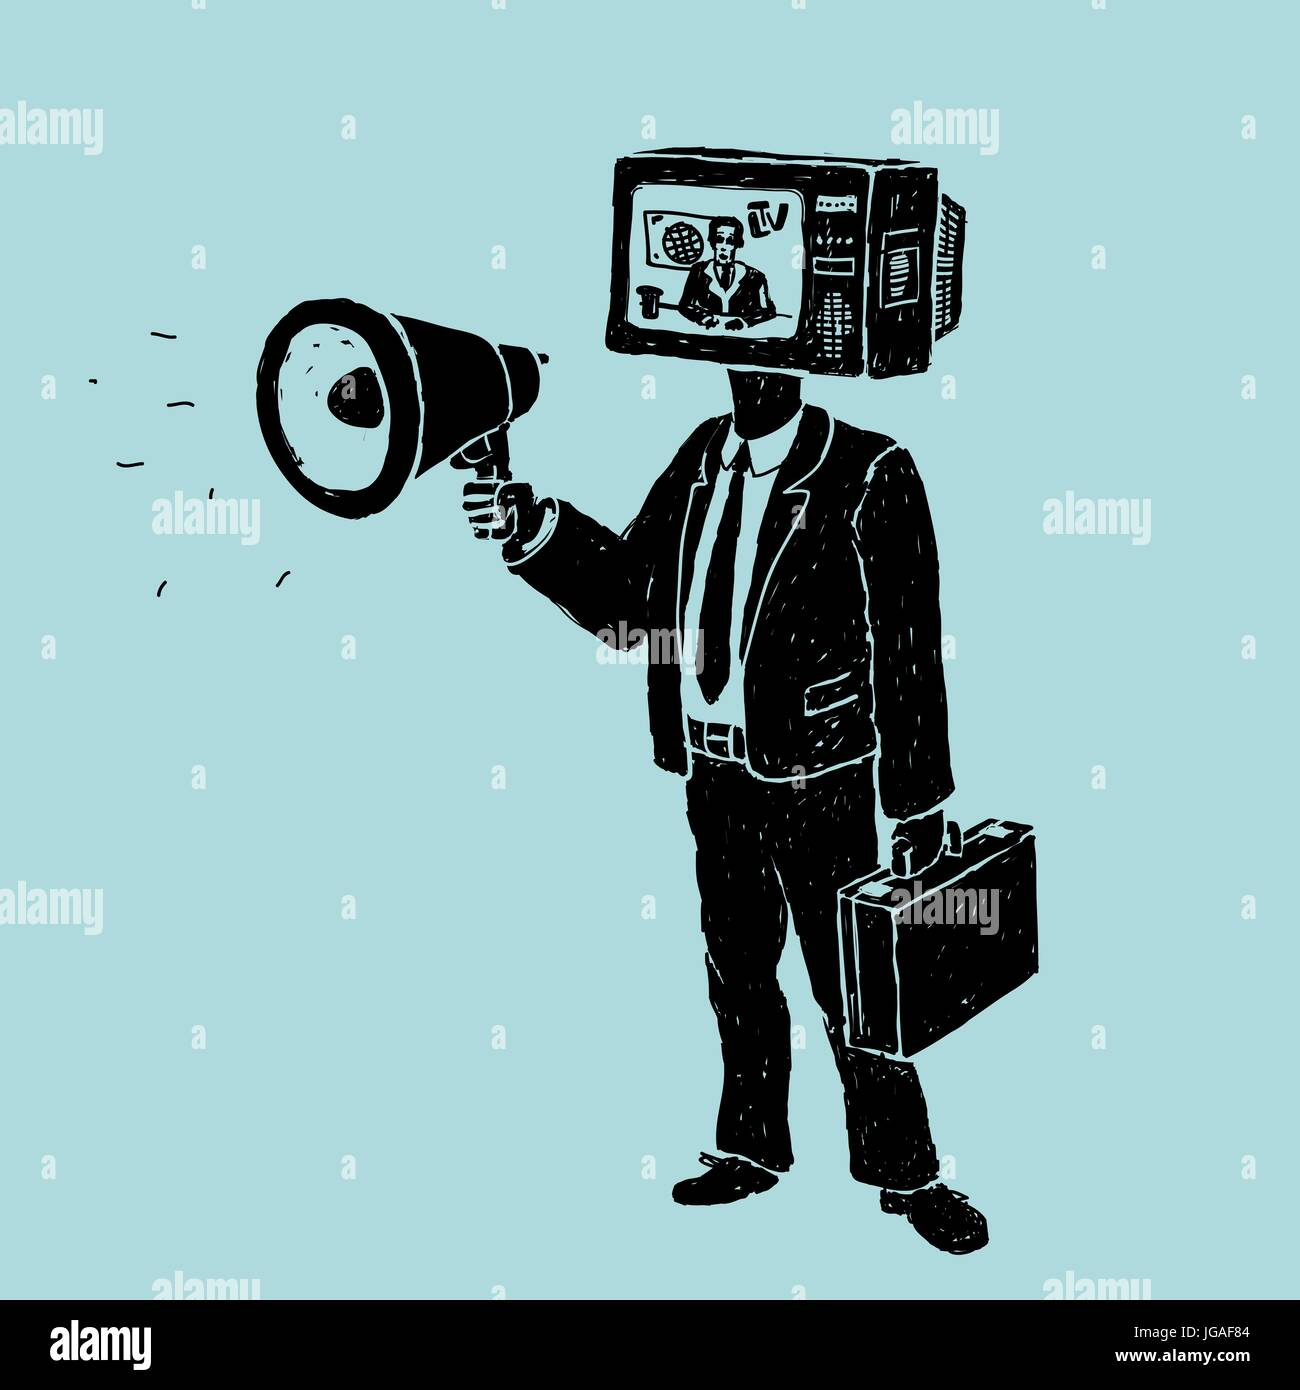 Propaganda by TV and Loudspeaker - Stock Image